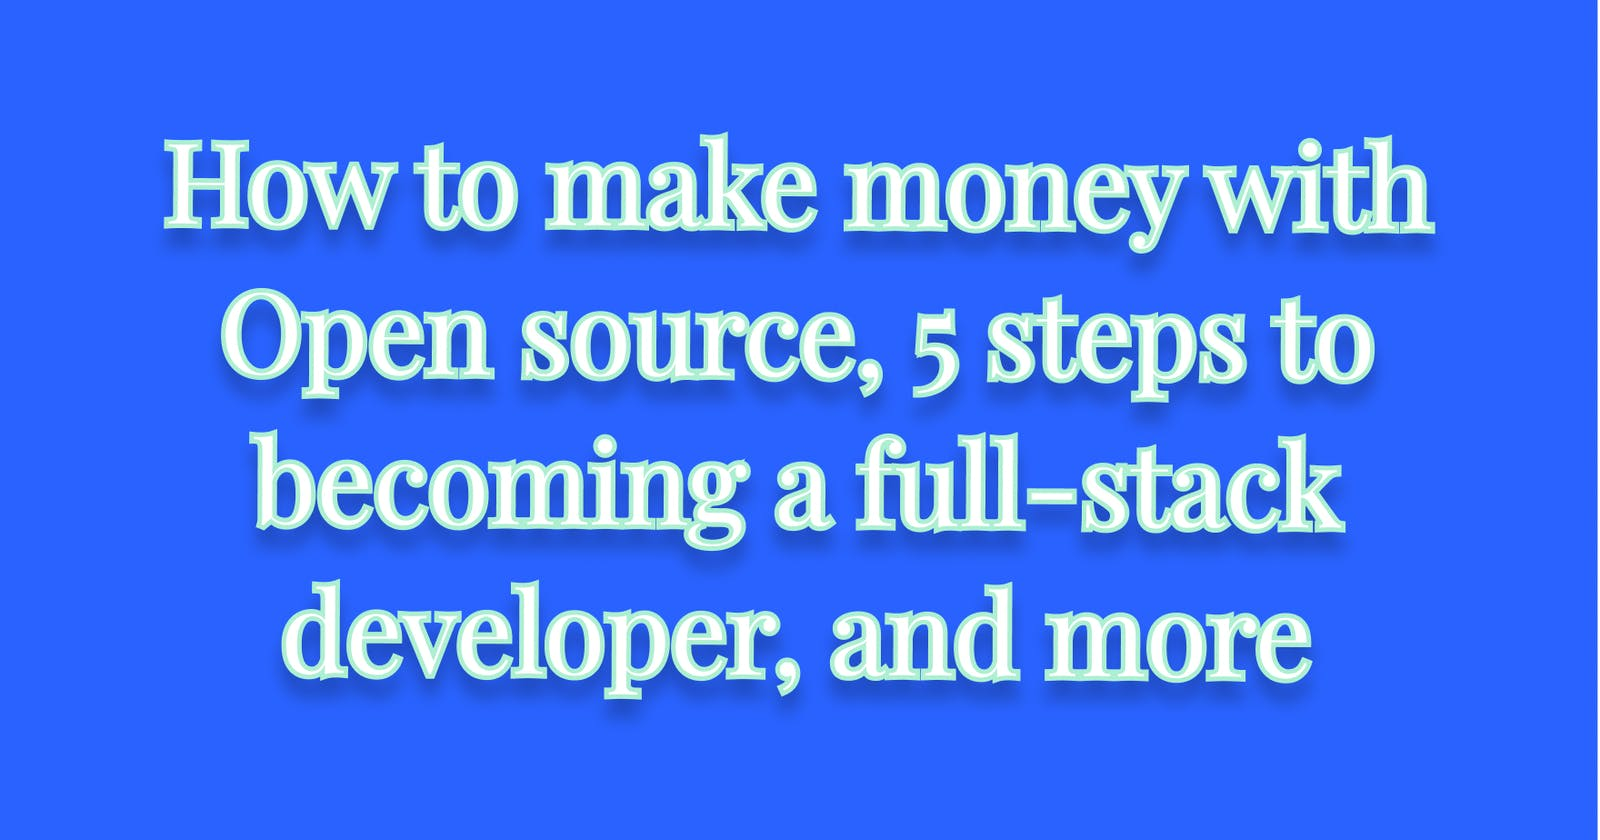 How to make money with Open source, 5 steps to becoming a full-stack developer, and more  My 10 favorite Tech Twitter tweets from the past week: